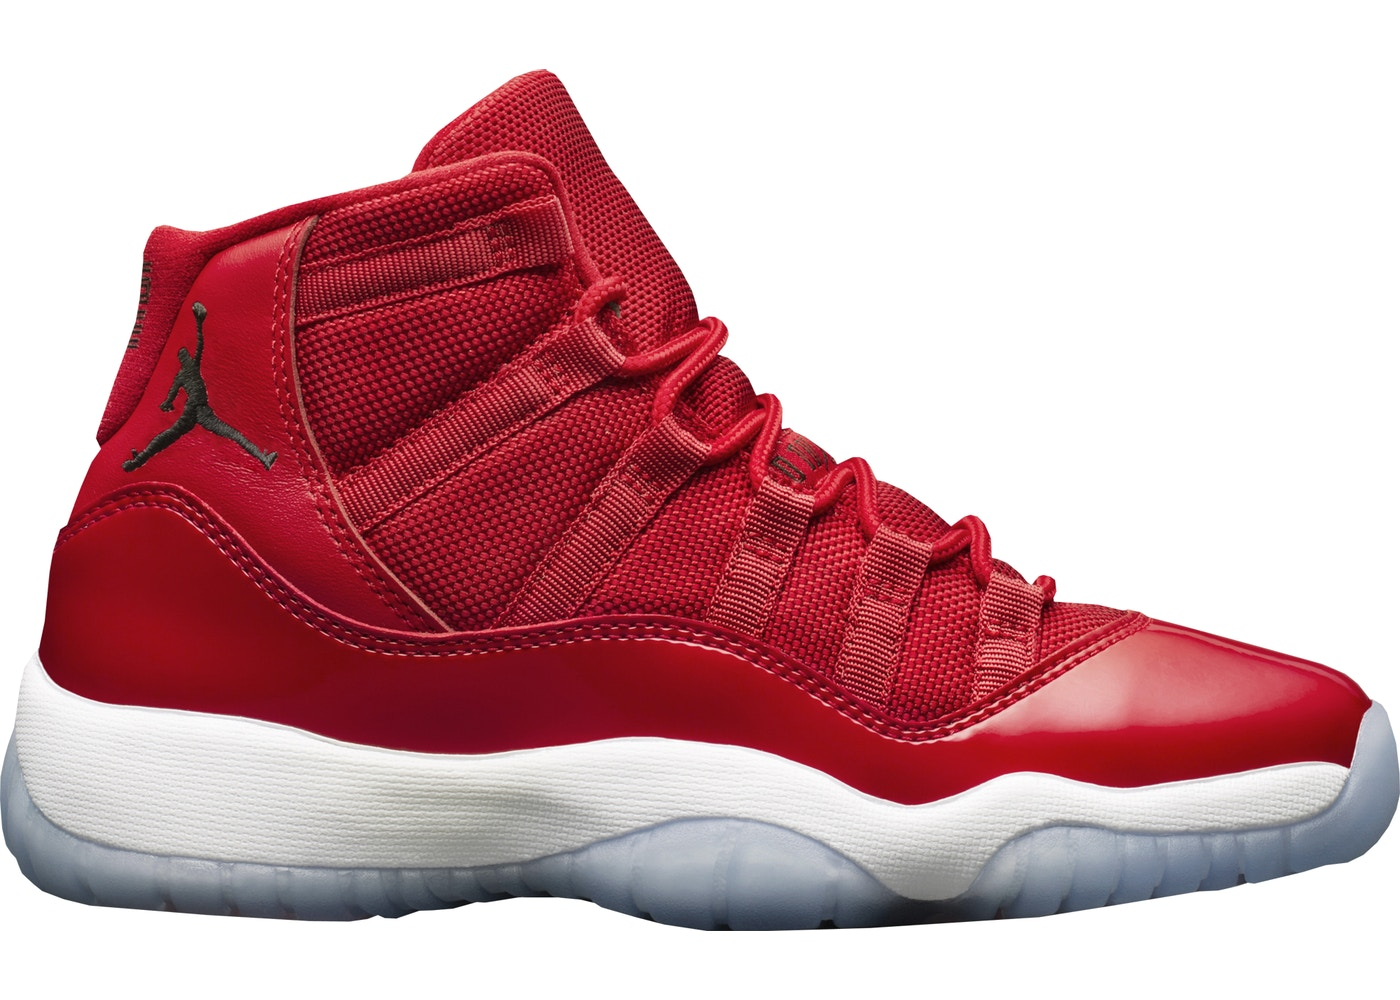 newest 2e55c 71b49 Jordan 11 Retro Win Like 96 (GS) - 378038-623